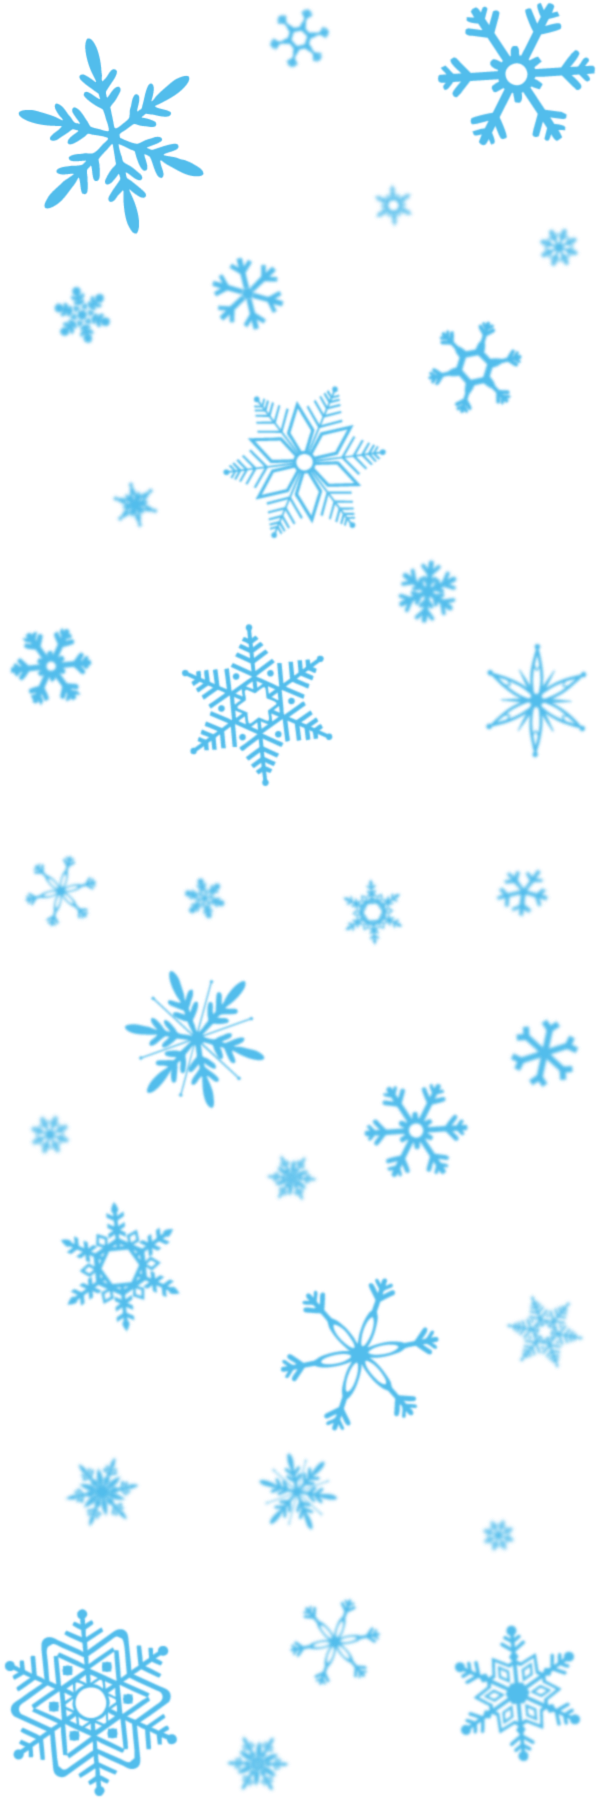 Snowflake clipart frozen clipart black and white Snowflakes Transparent PNG Pictures - Free Icons and PNG Backgrounds clipart black and white